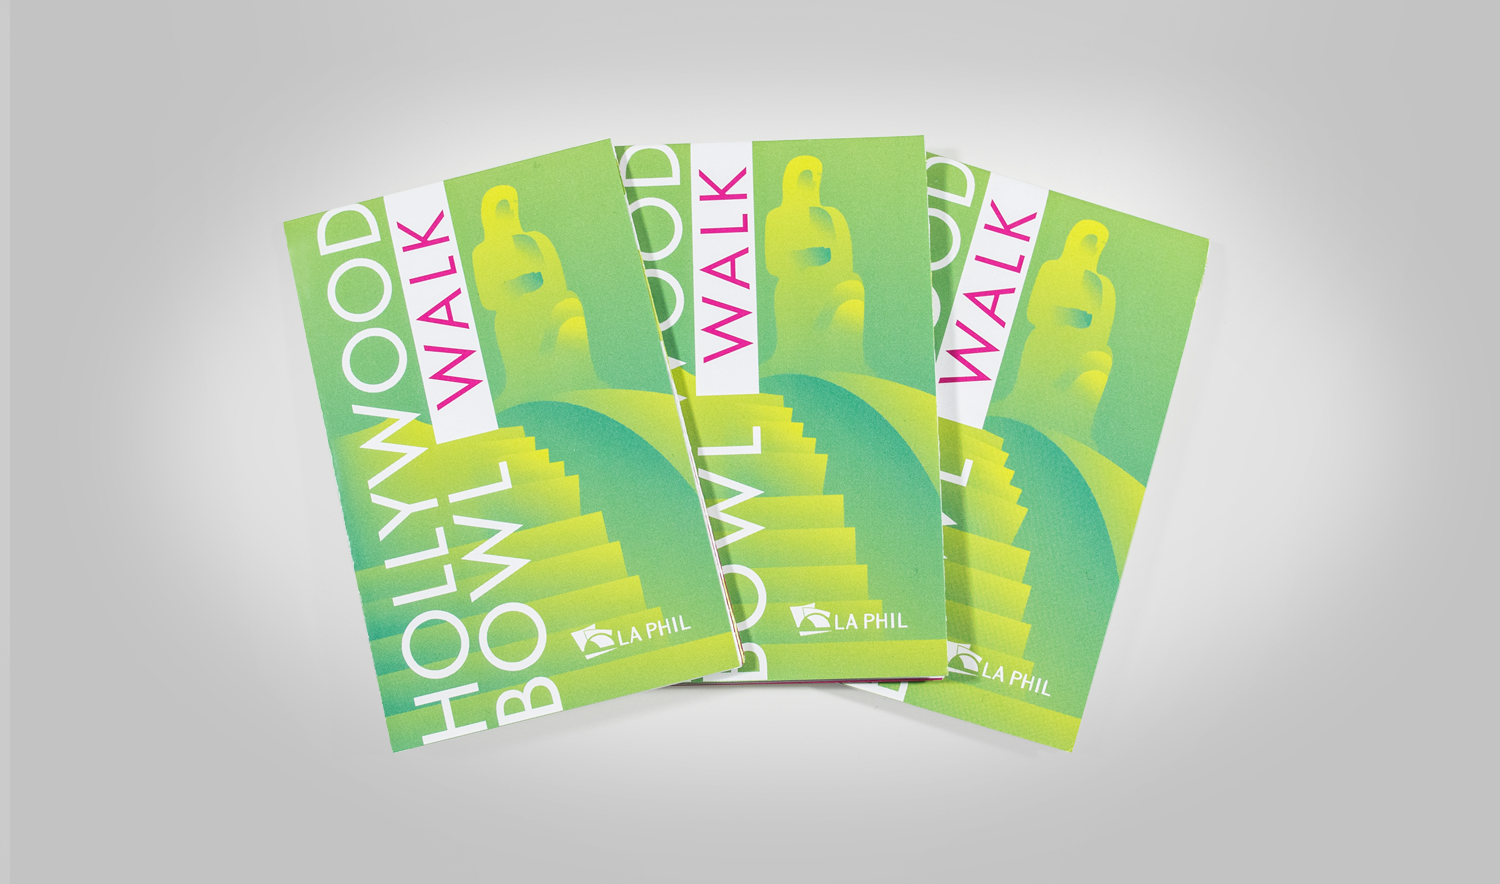 Hollywood Bowl: Walking Guide Booklet